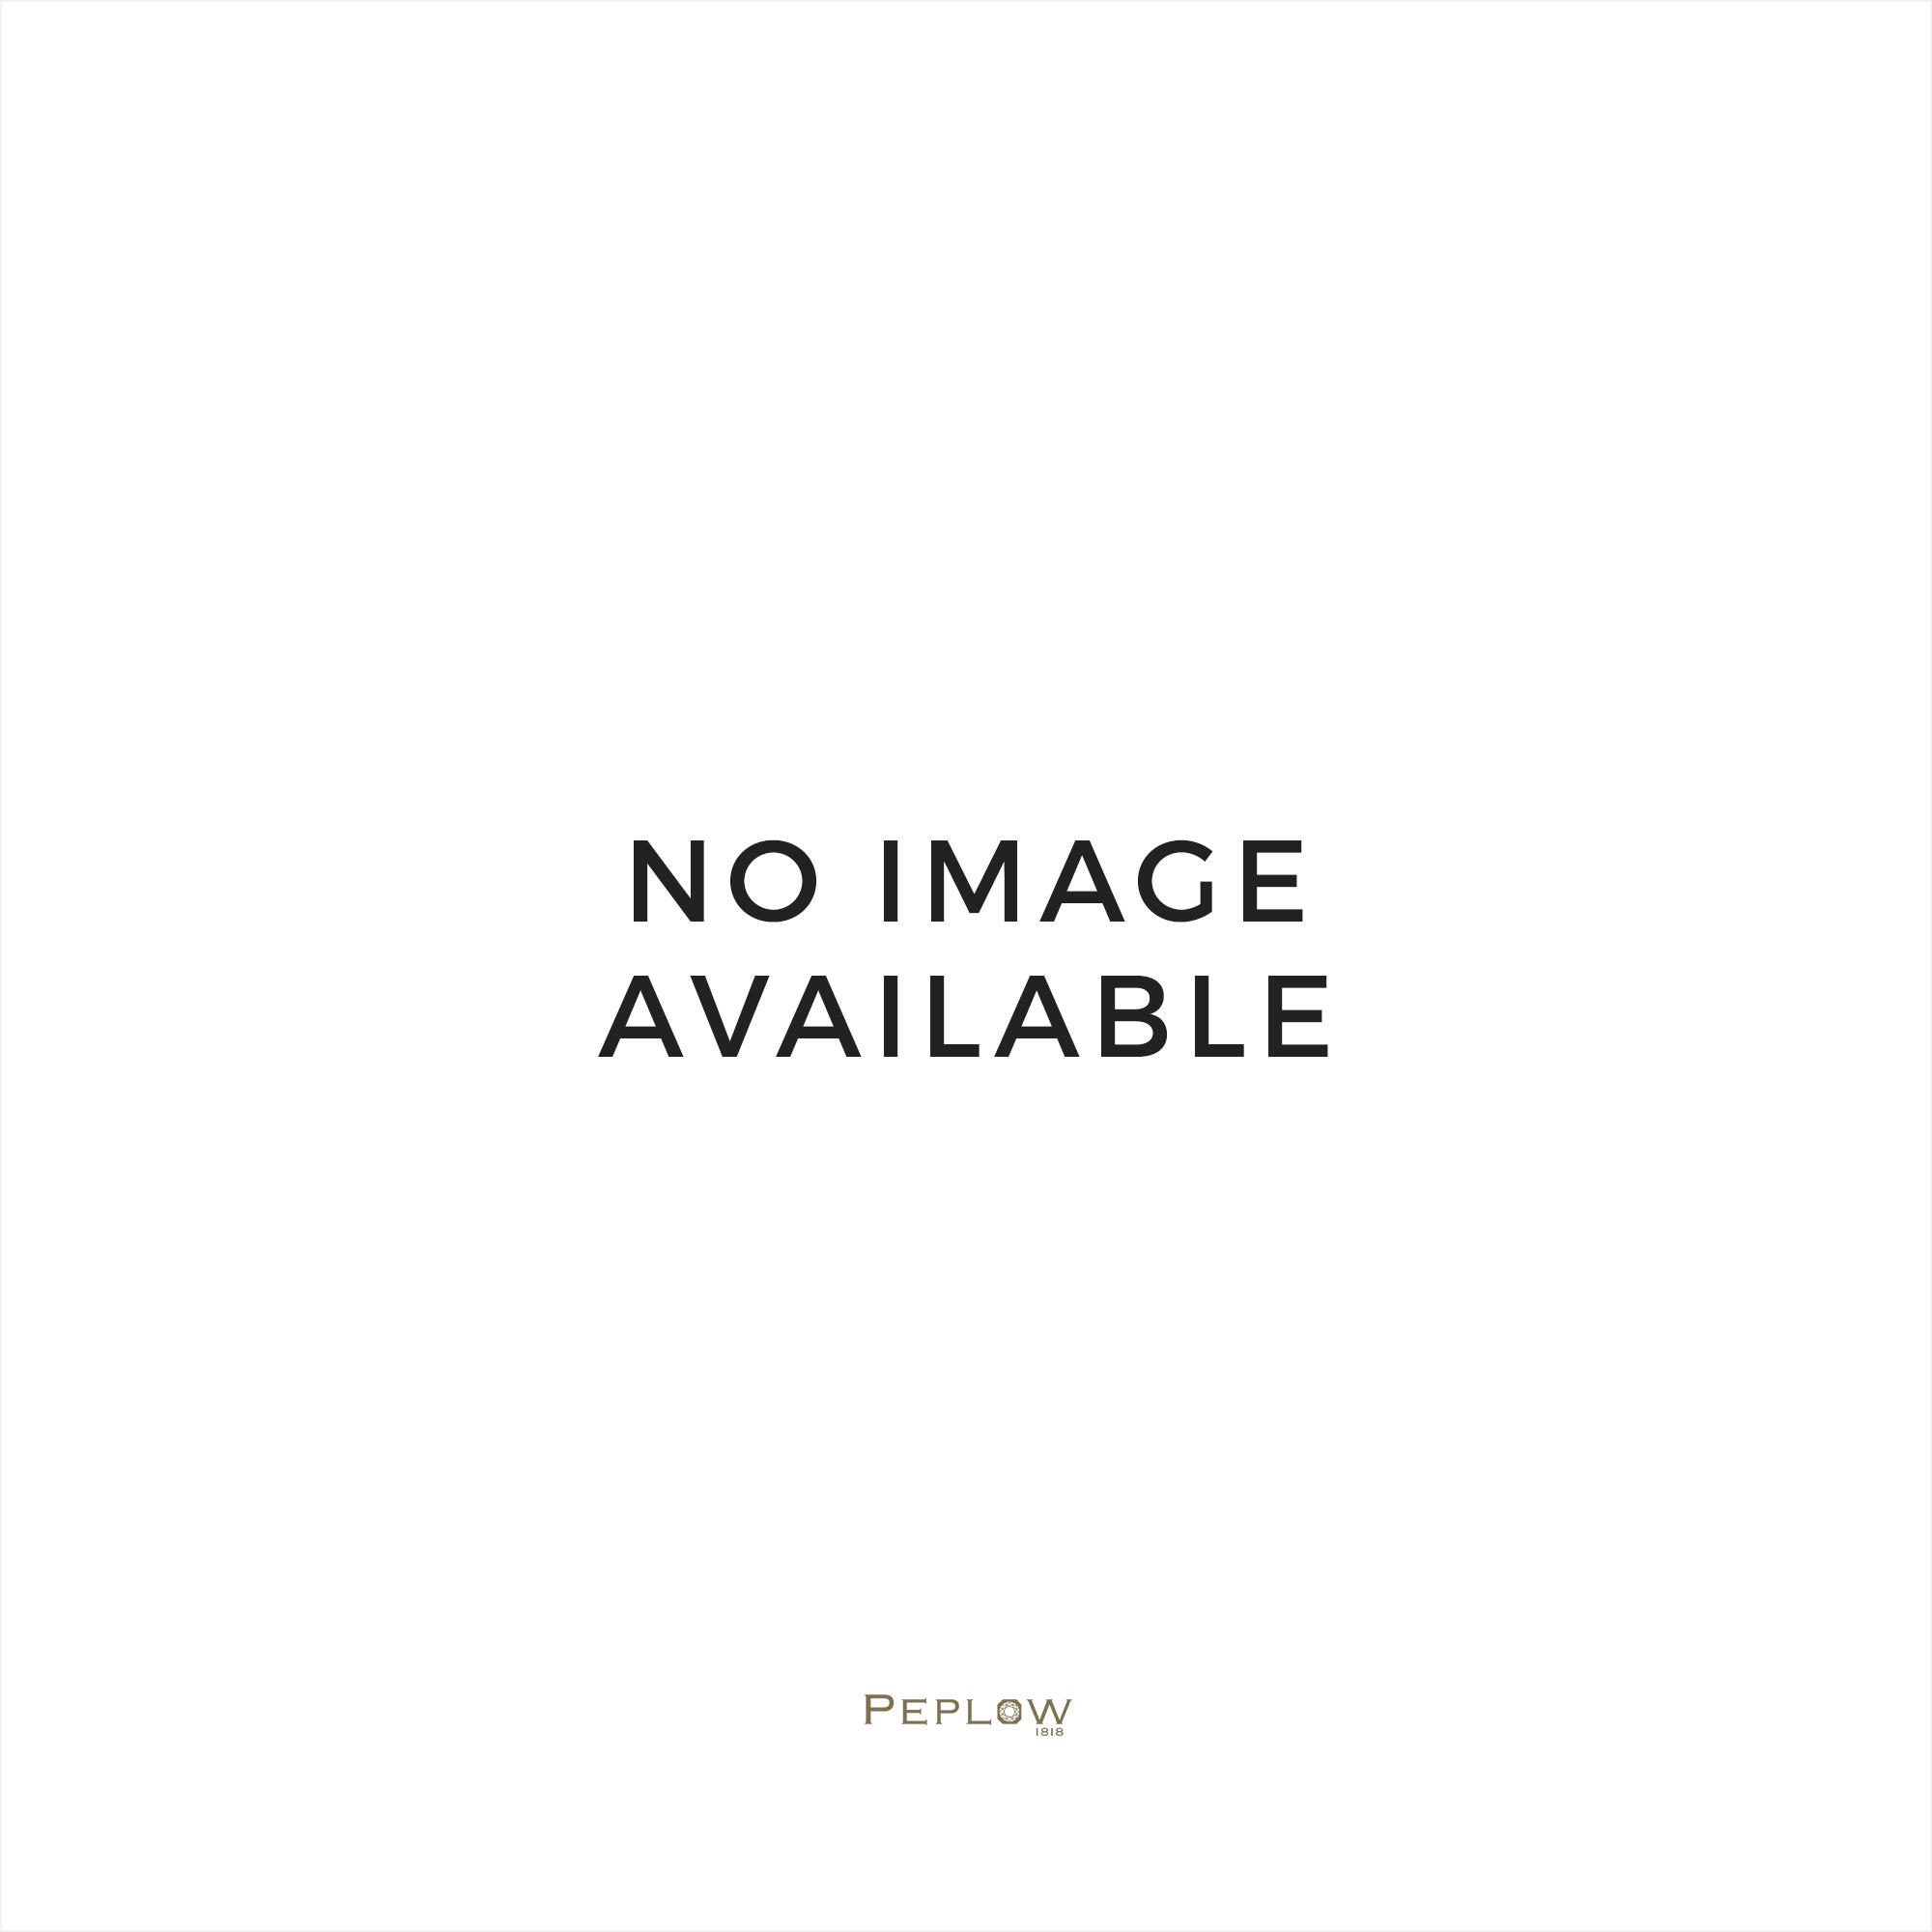 Royal Selangor Crown and Rose hipflask in wooden box, 0094402G